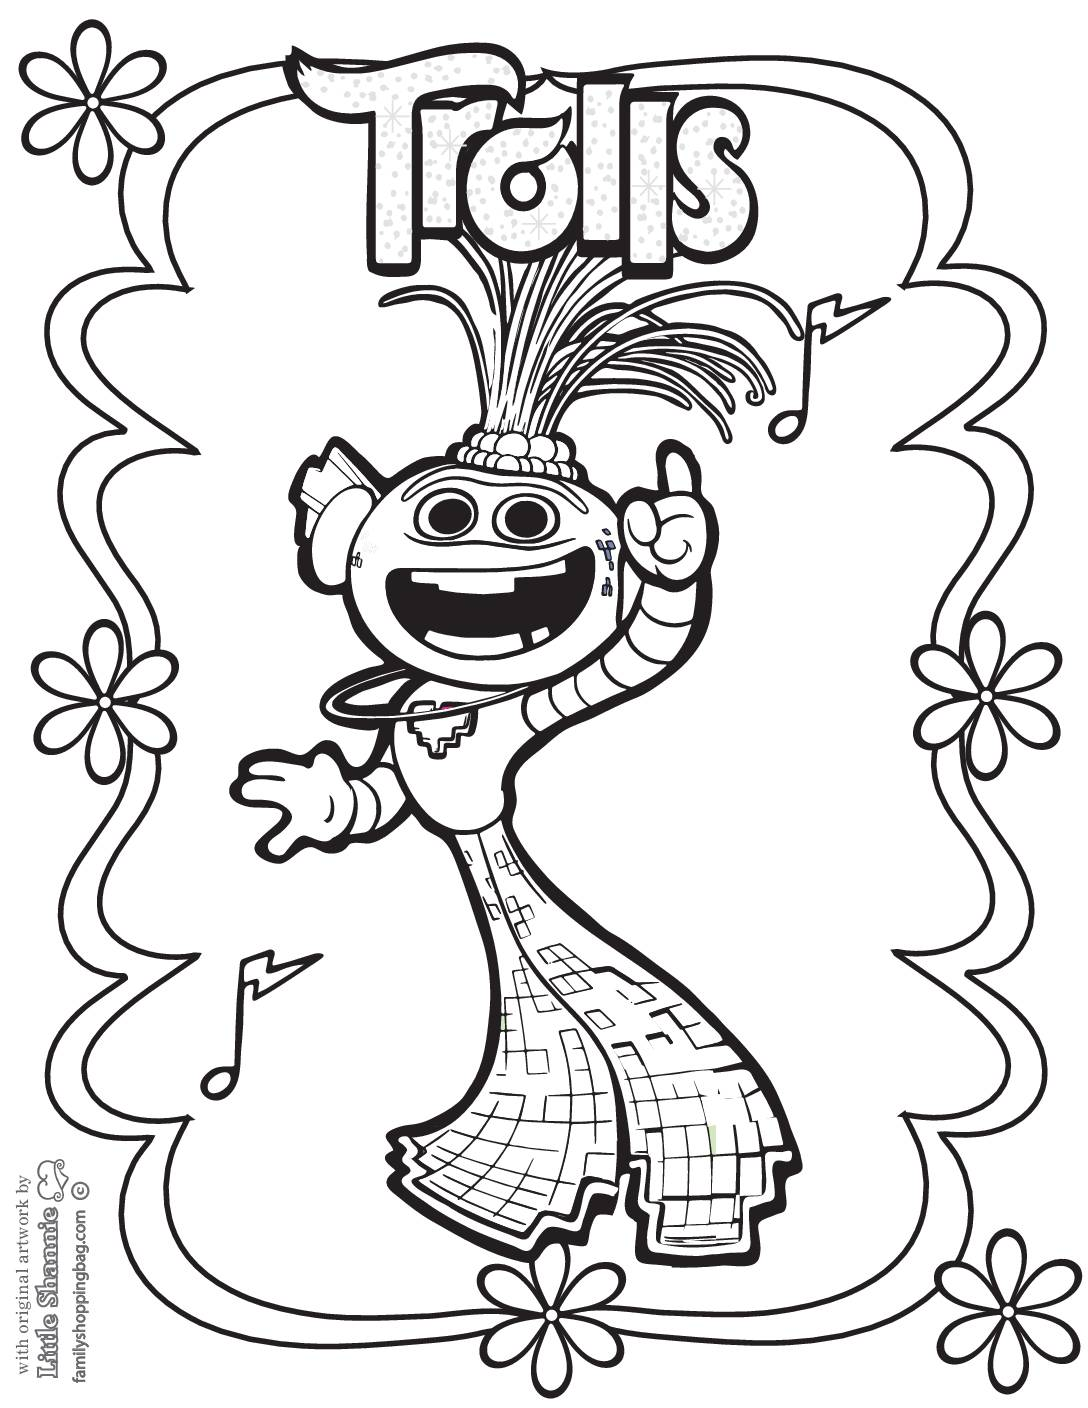 Coloring Page 5 Trolls